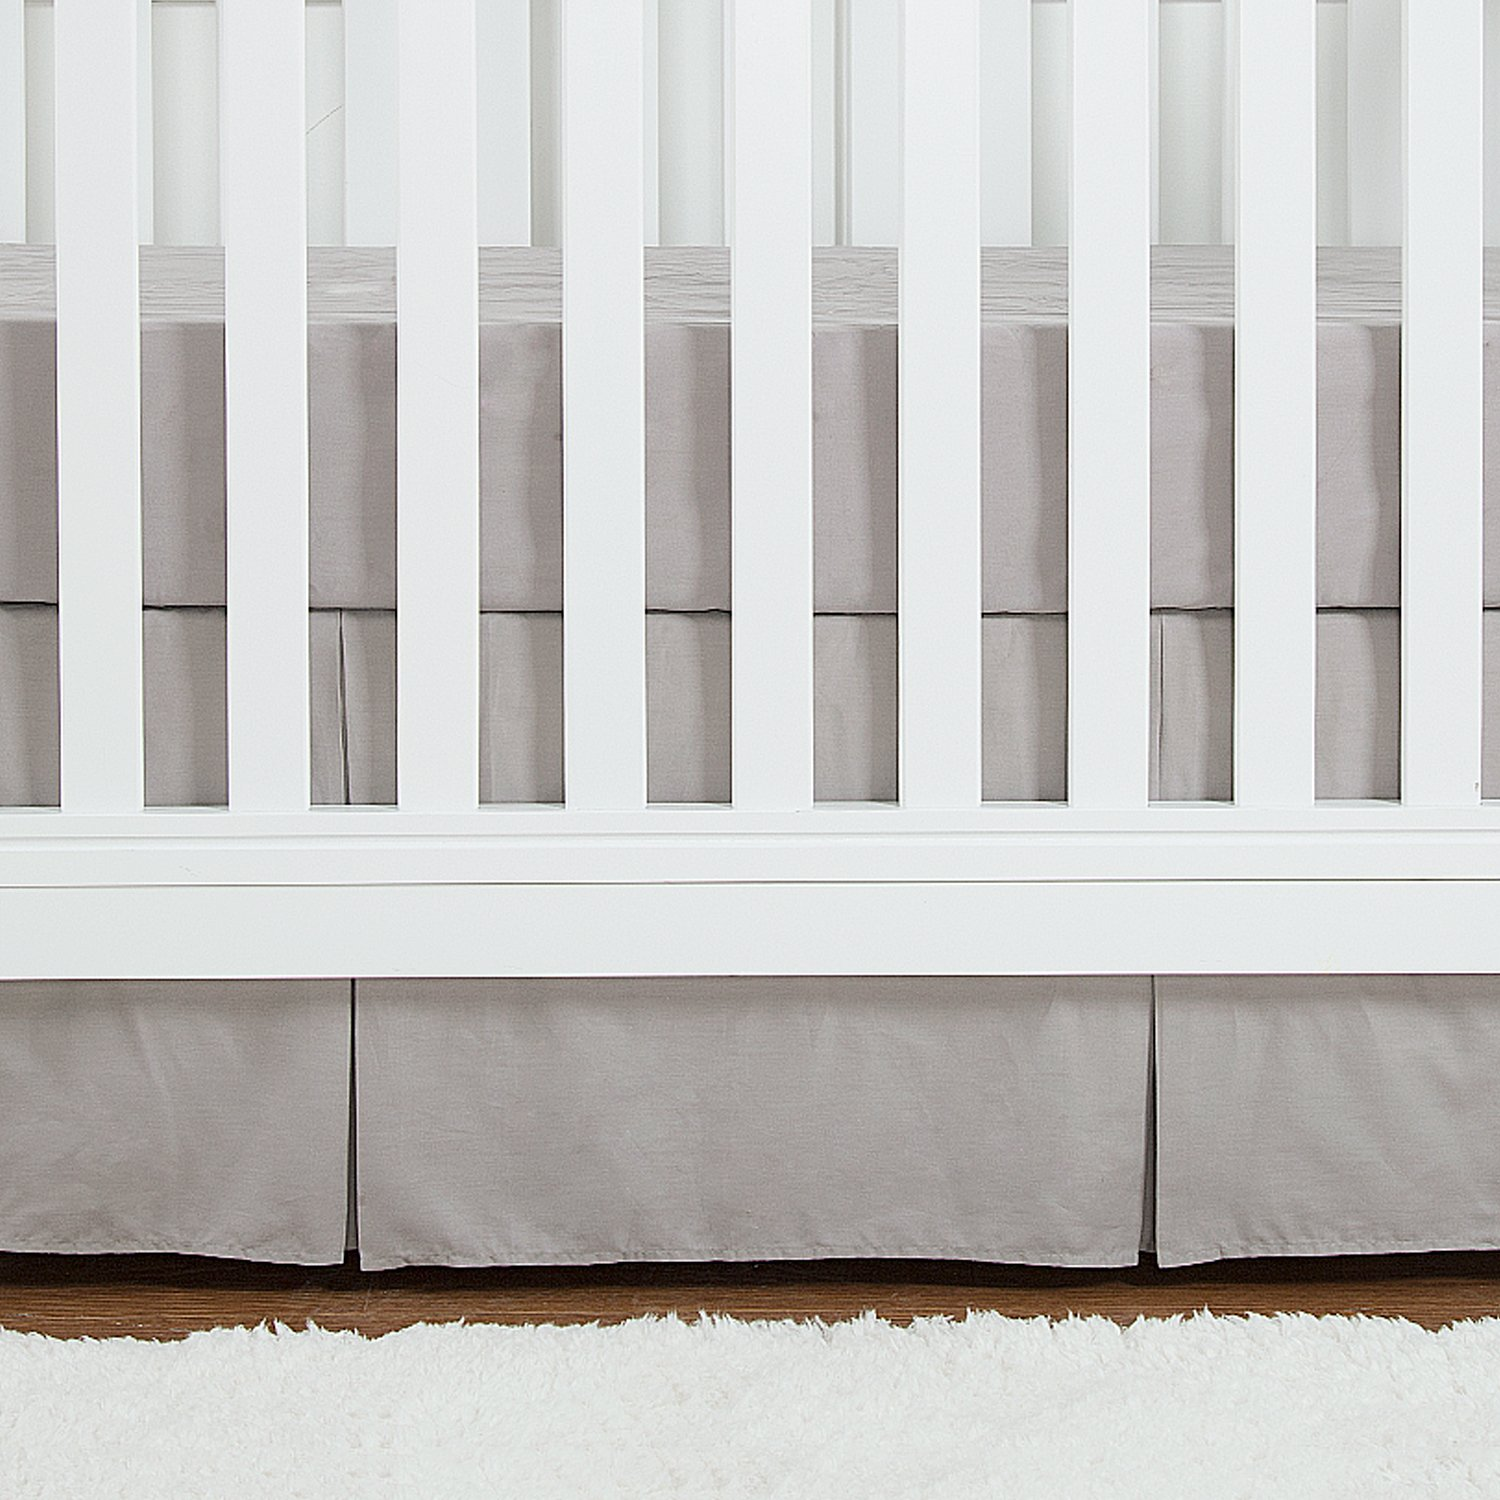 TILLYOU Crib Bed Skirt Pleated, 100% Natural Cotton, Nursery Crib Bedding for Baby Boys and Girls, 14 Drop/Gray 14 Drop/Gray Smile Textile